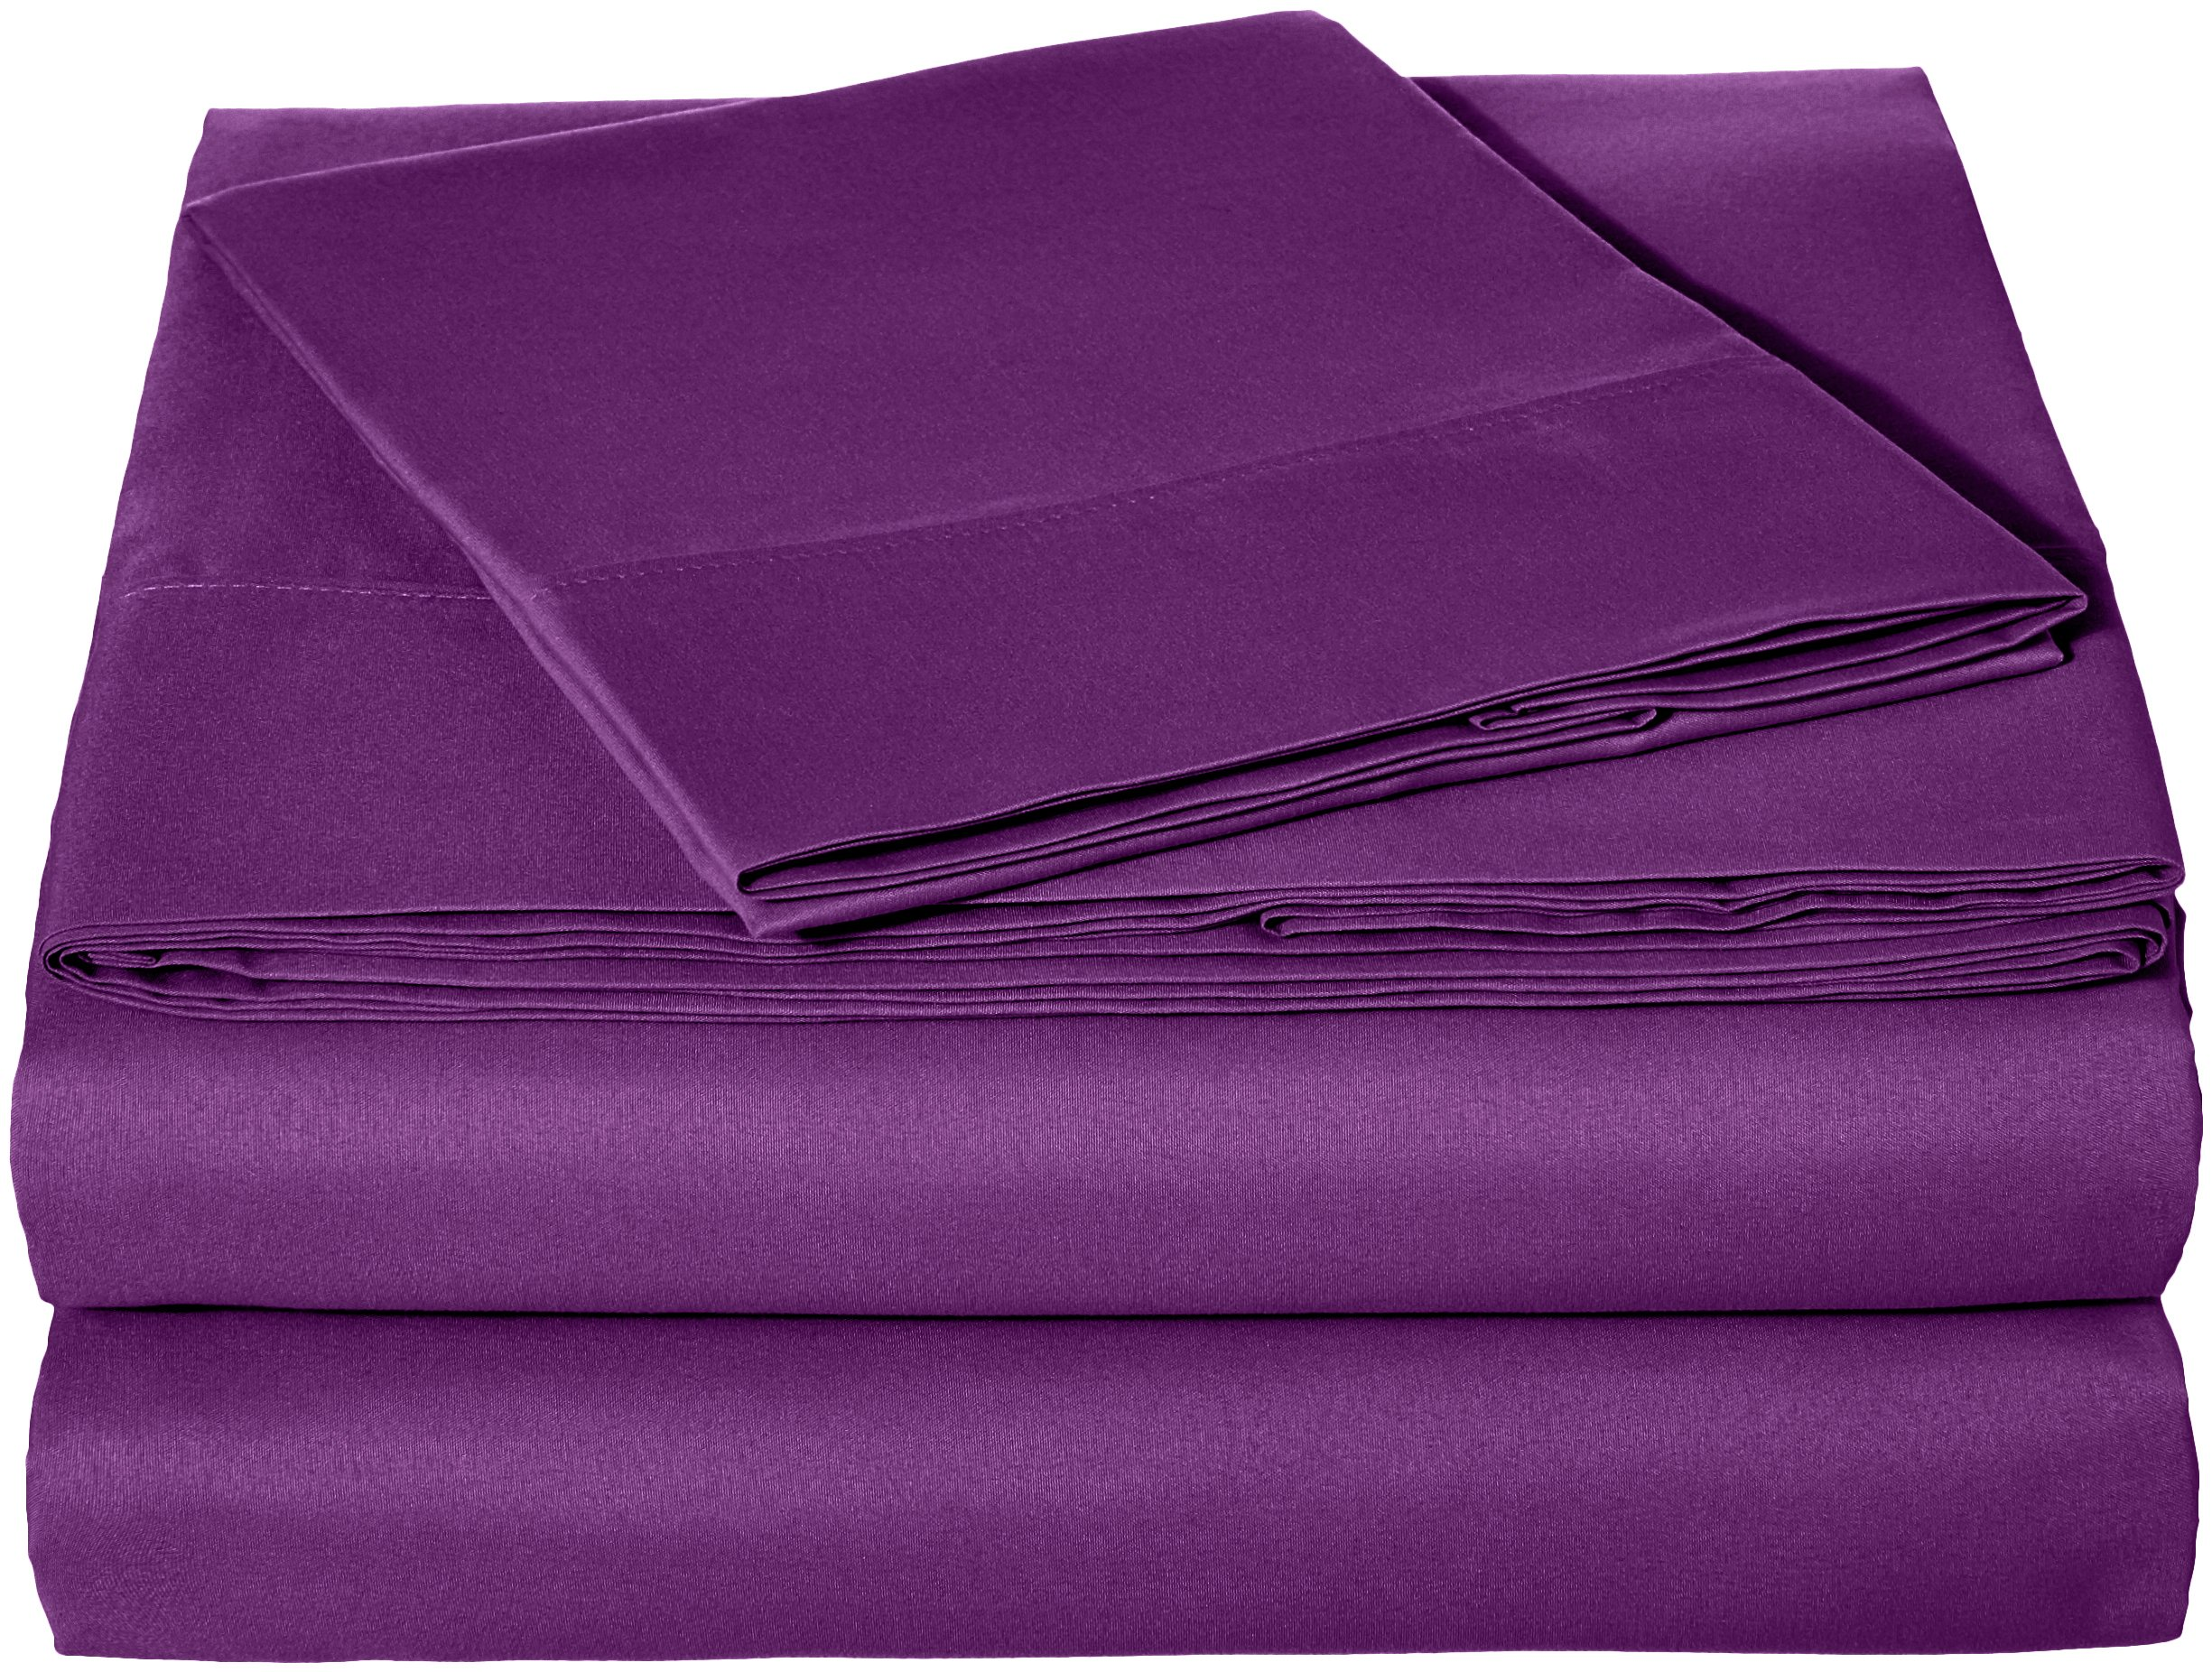 AmazonBasics Microfiber Sheet Set - Twin Extra-Long, Plum